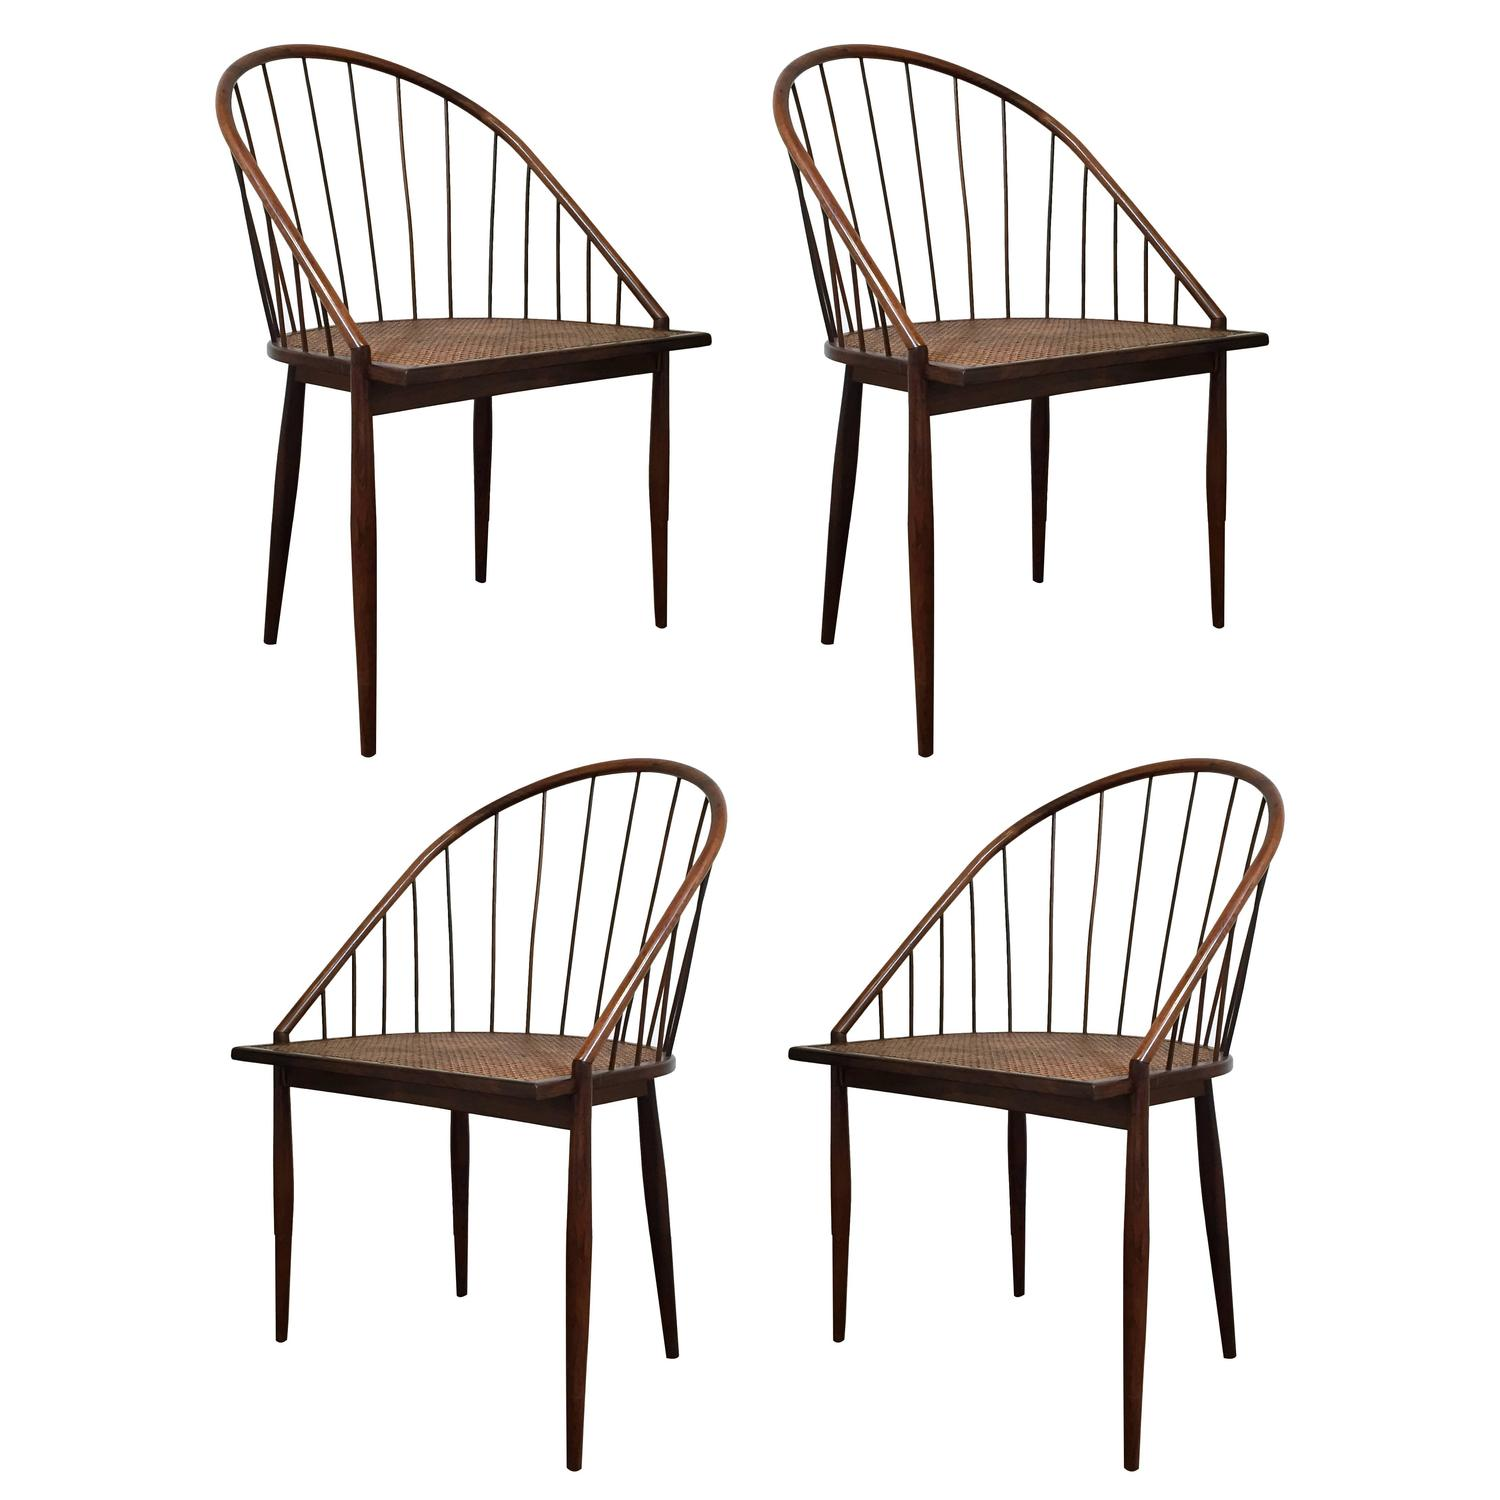 Set of Four Brazilian Spindle Back Chairs by Joaquim Tenreiro at